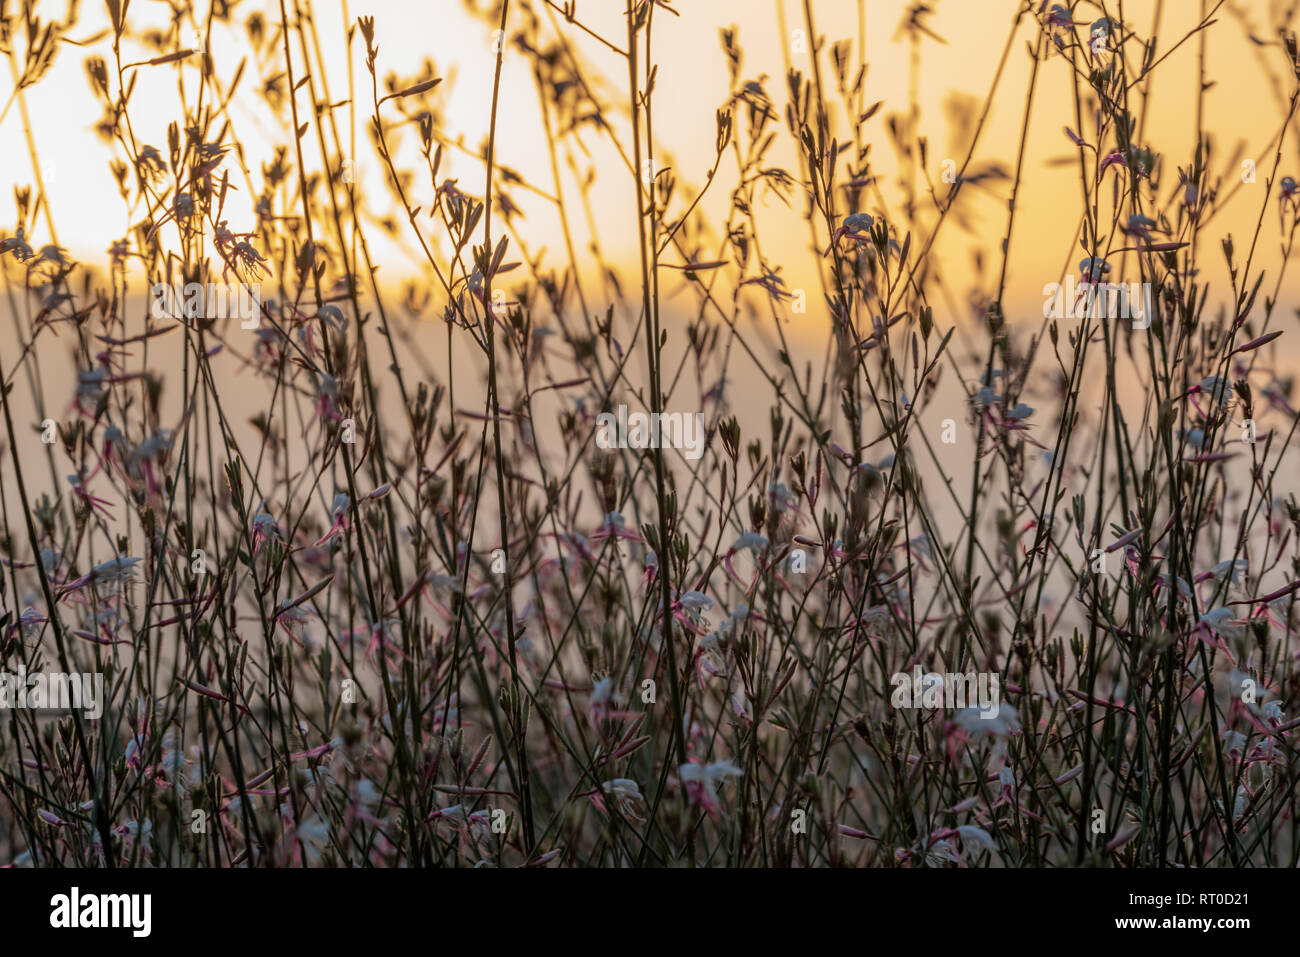 A Gaura Belleza bush silhouetted against a golden sunset. - Stock Image